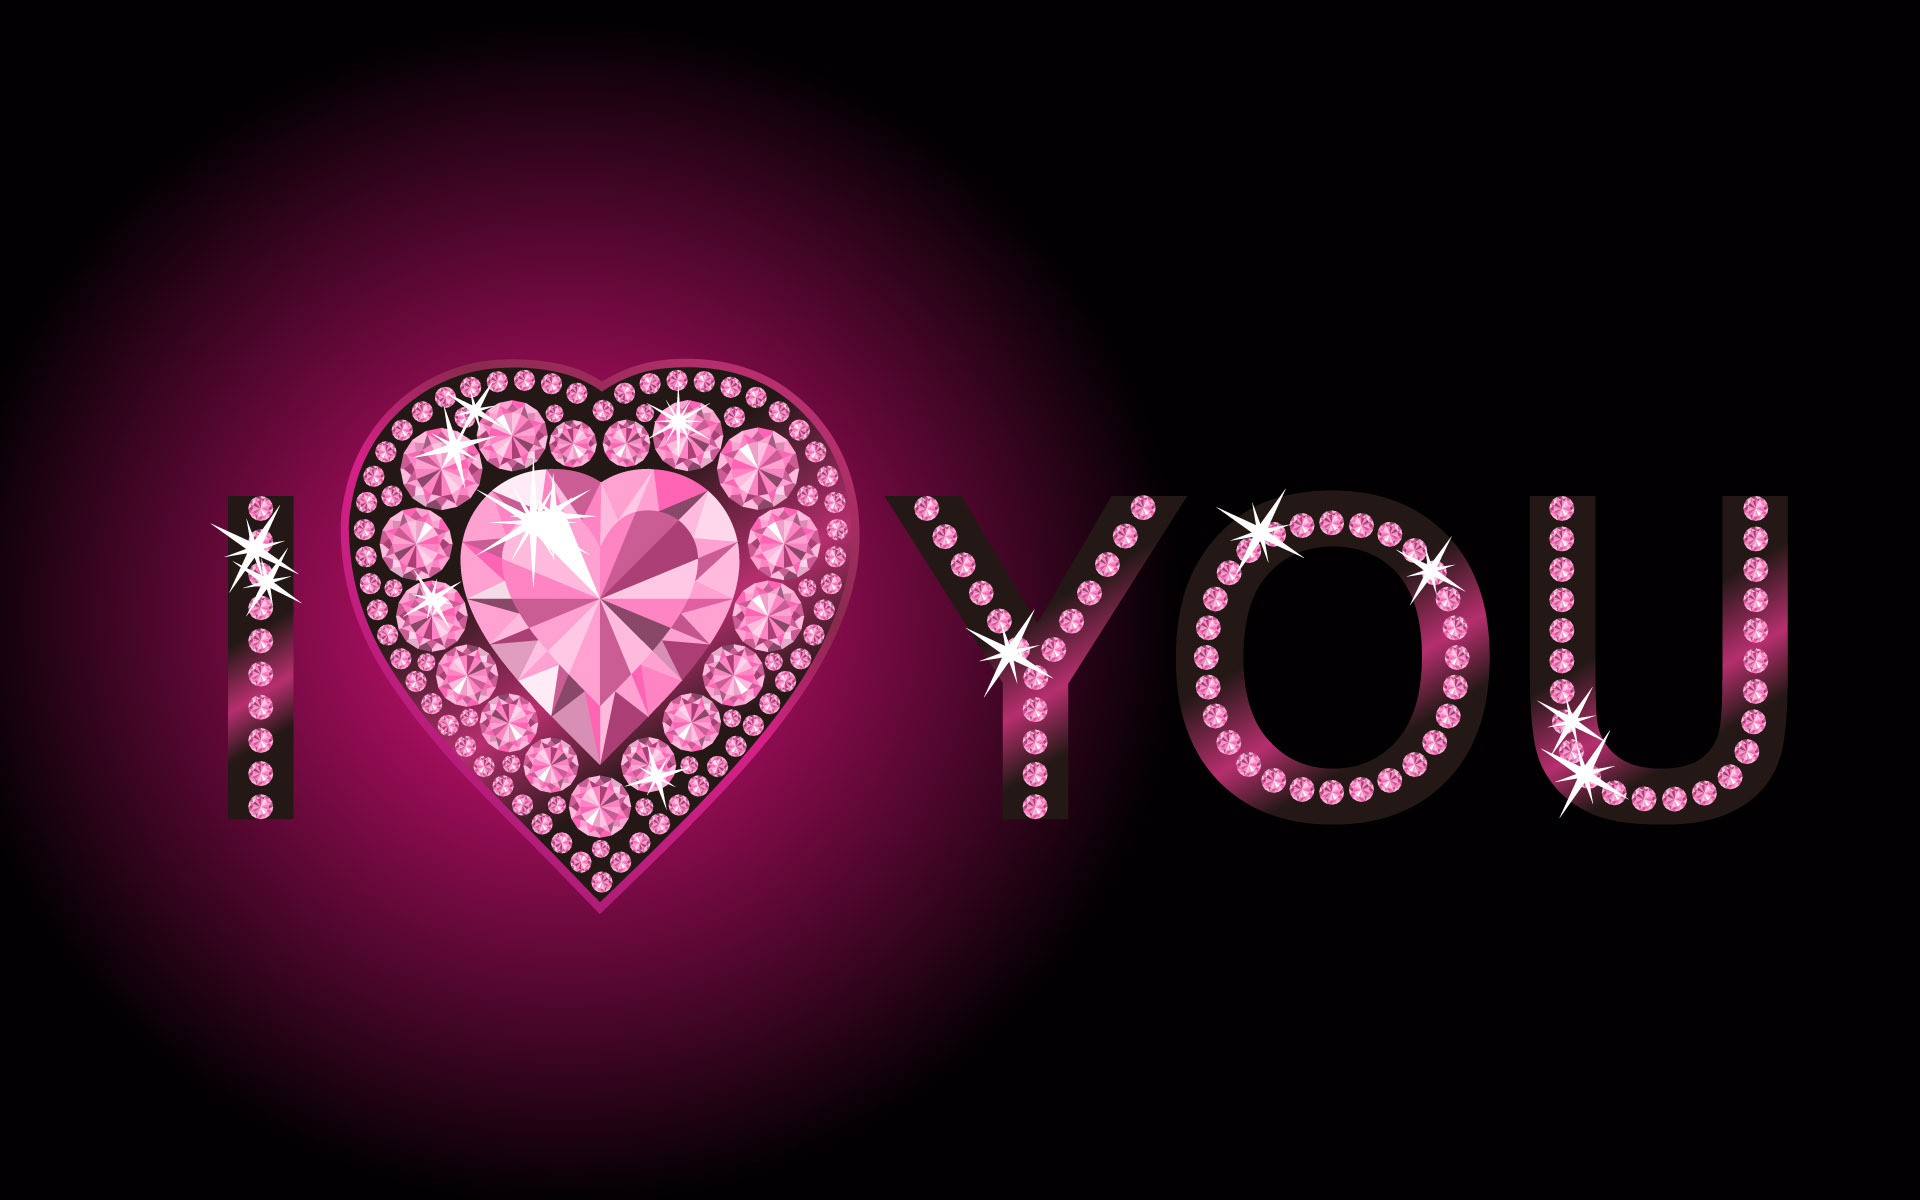 Love Wallpaper New 2014 : I Love You Desktop Wallpaper - Wallpaper, High Definition ...